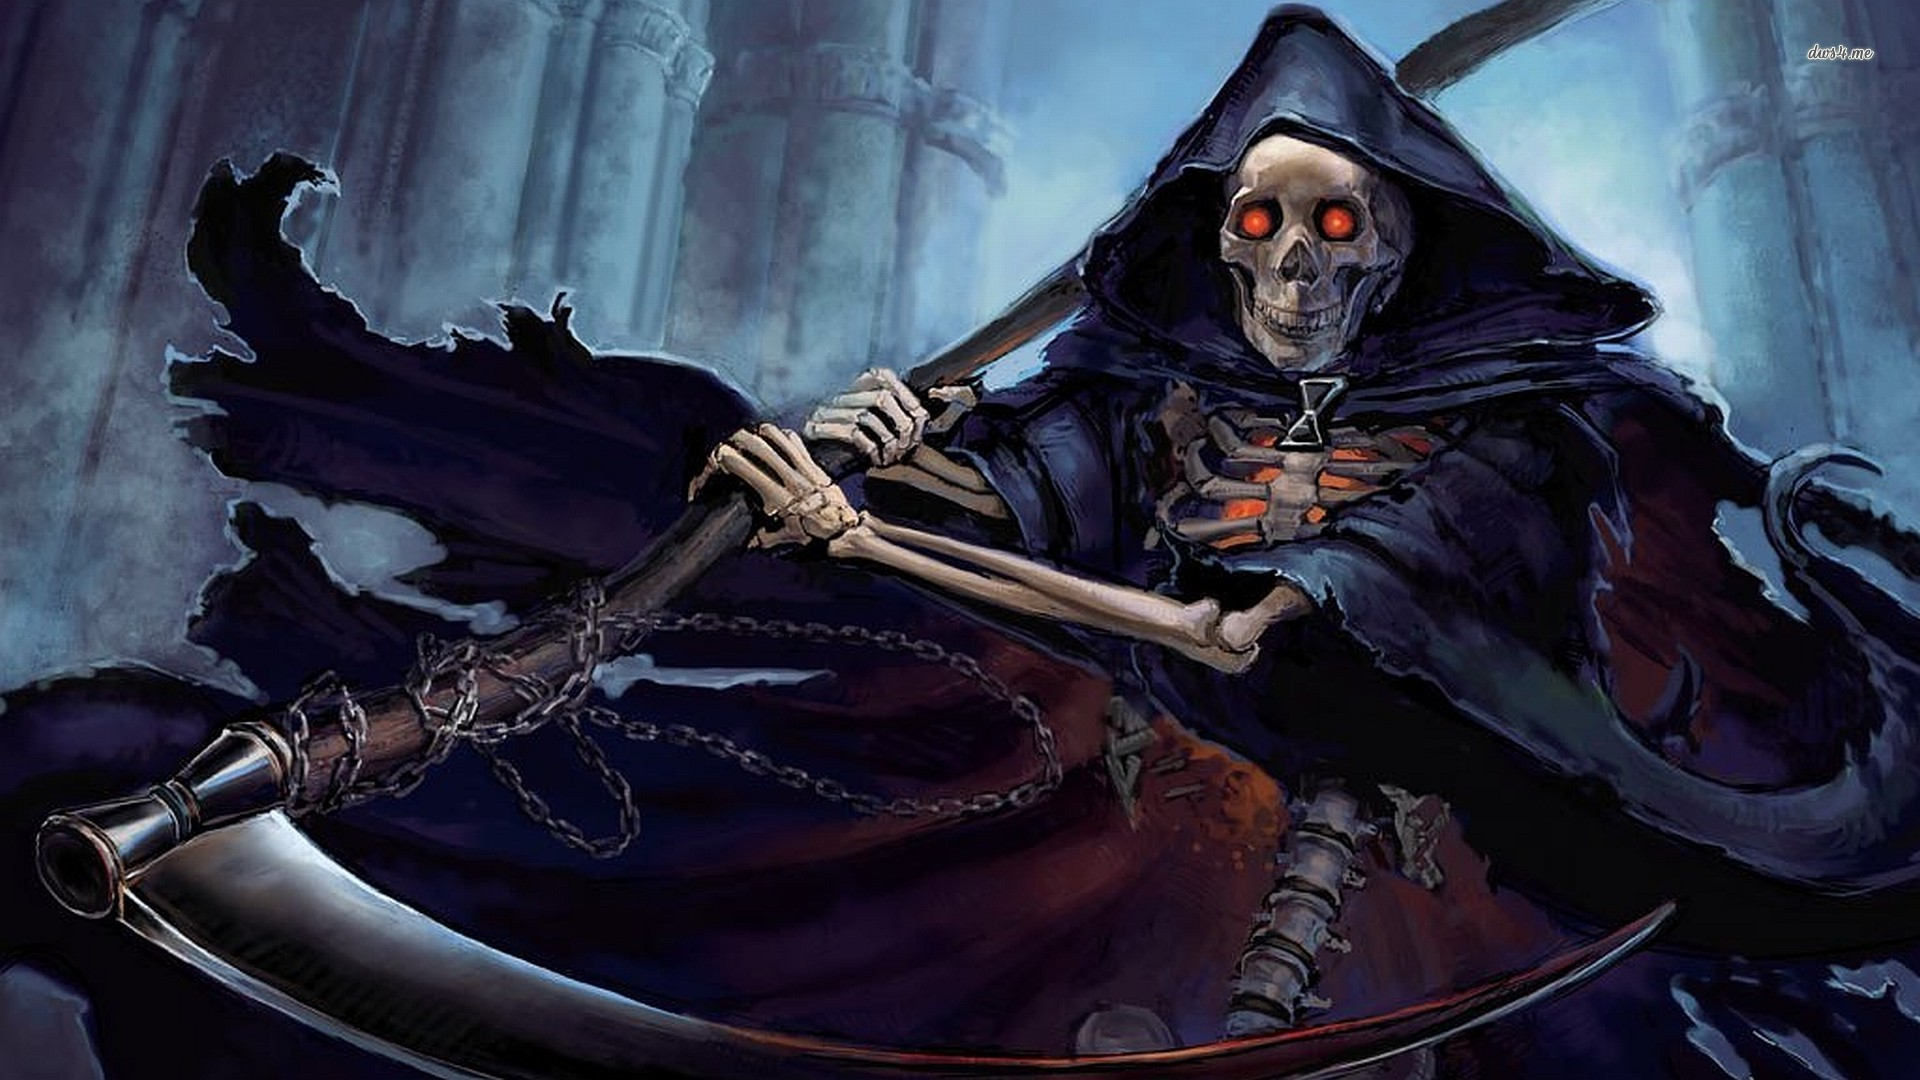 Res: 1920x1080, ... Skeleton grim reaper wallpaper  ...